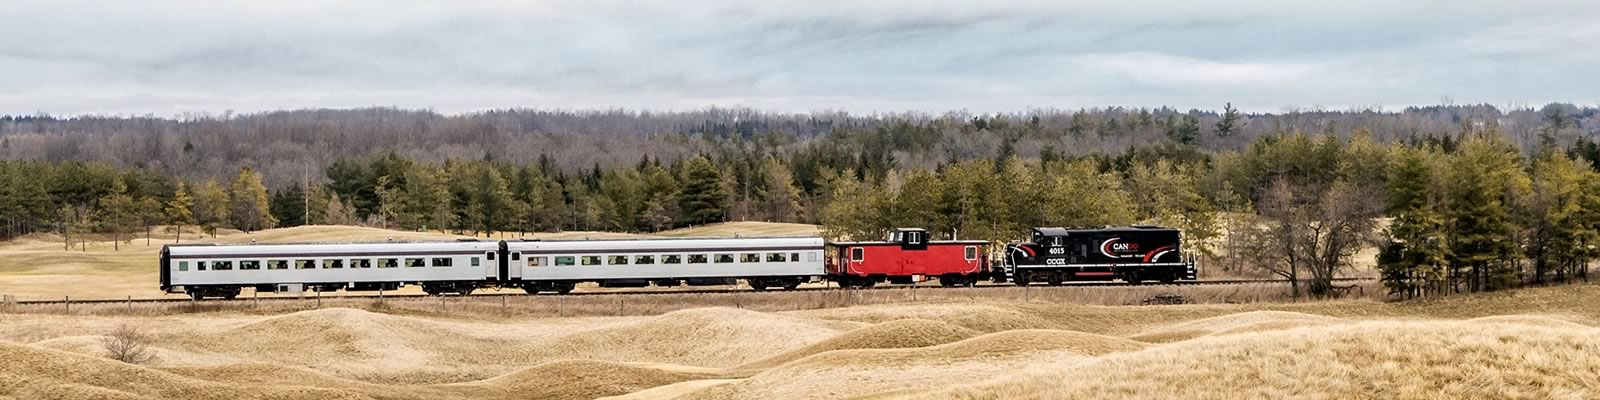 The Credit Valley Explorer glides through the rolling hills at Caledon's Osprey Valley Golf Club during its final excursion on the OrangevilleBrampton Railway on February 30. New operator Gio Railways has no immediate plans to bring back the tourist service. Photo by Warren Schlote.